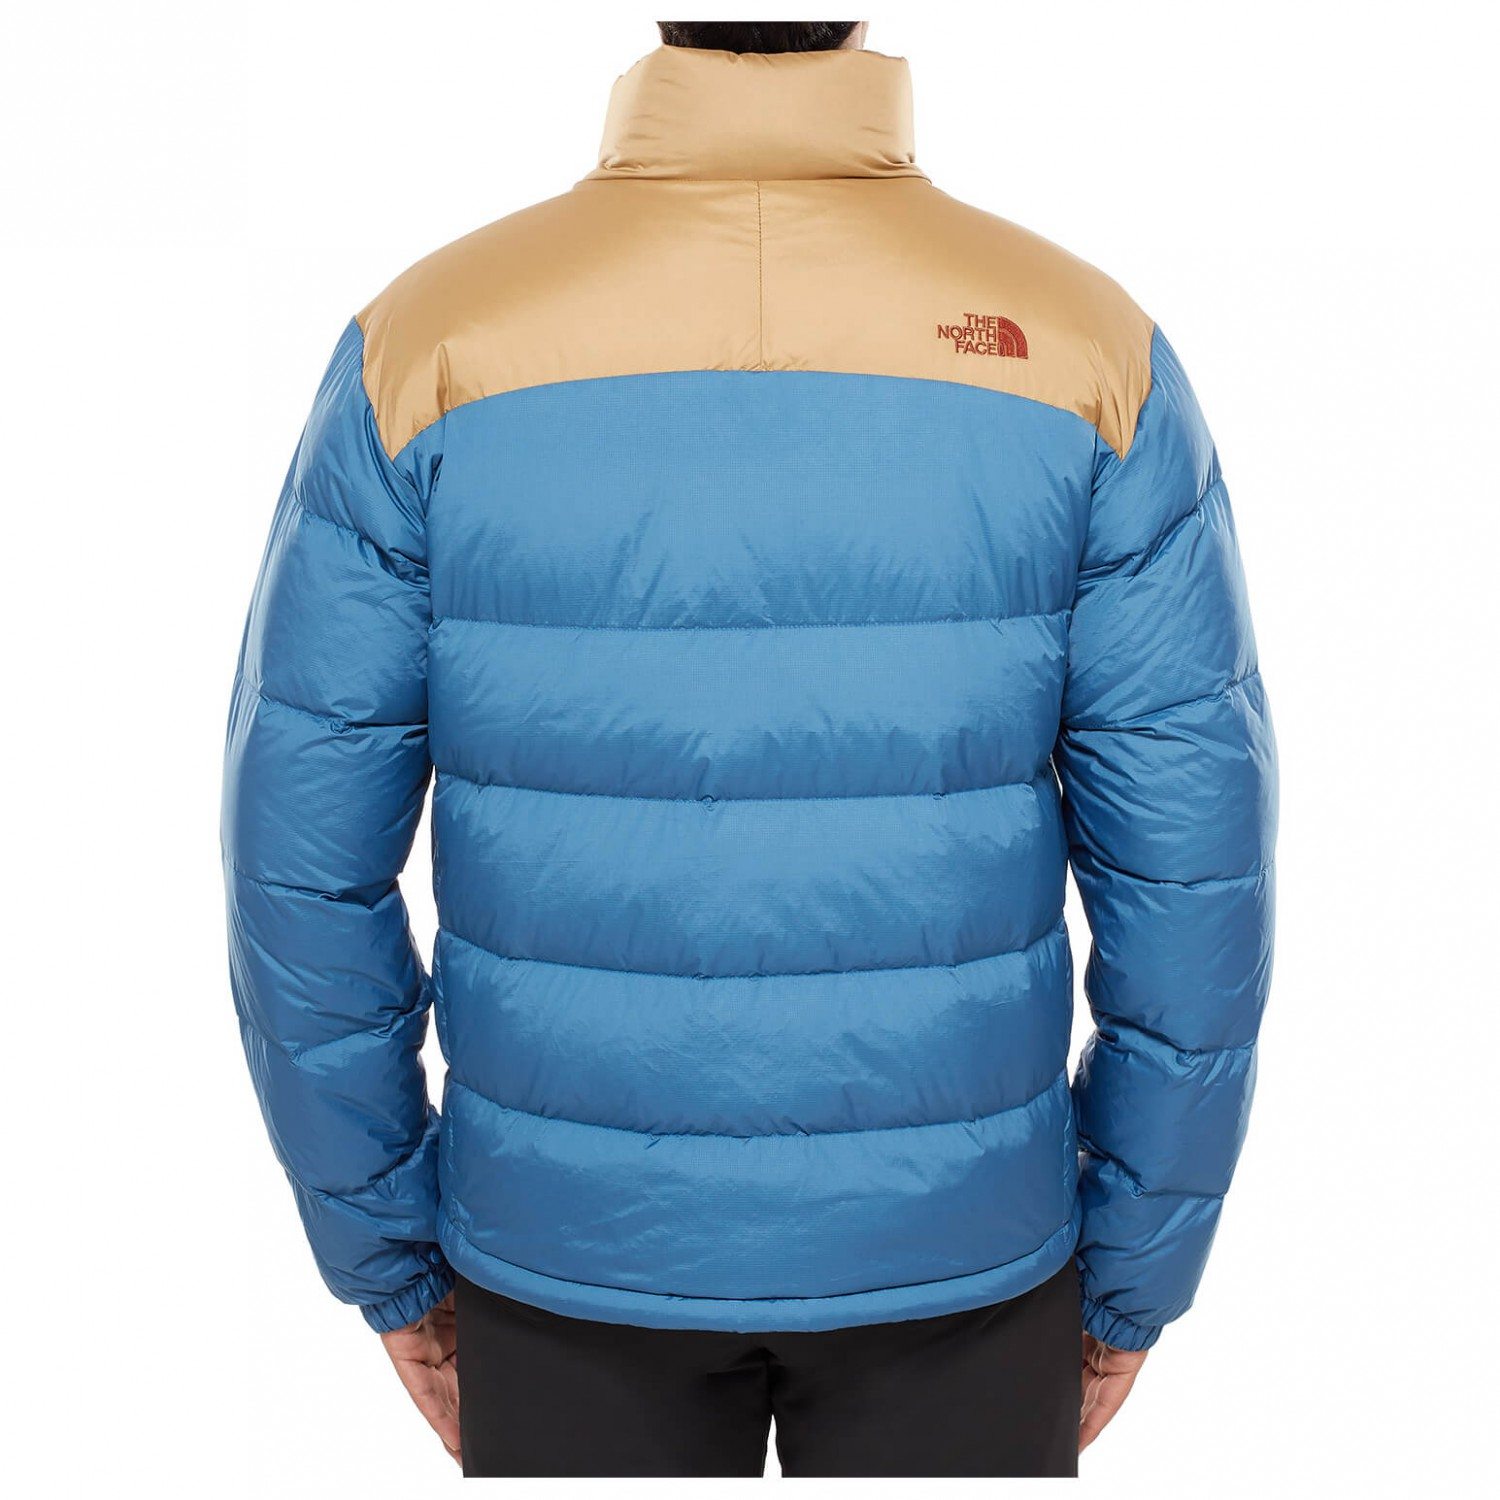 bfee1dab7e promo code for north face nuptse 2 jacket colors 6024b 068d9